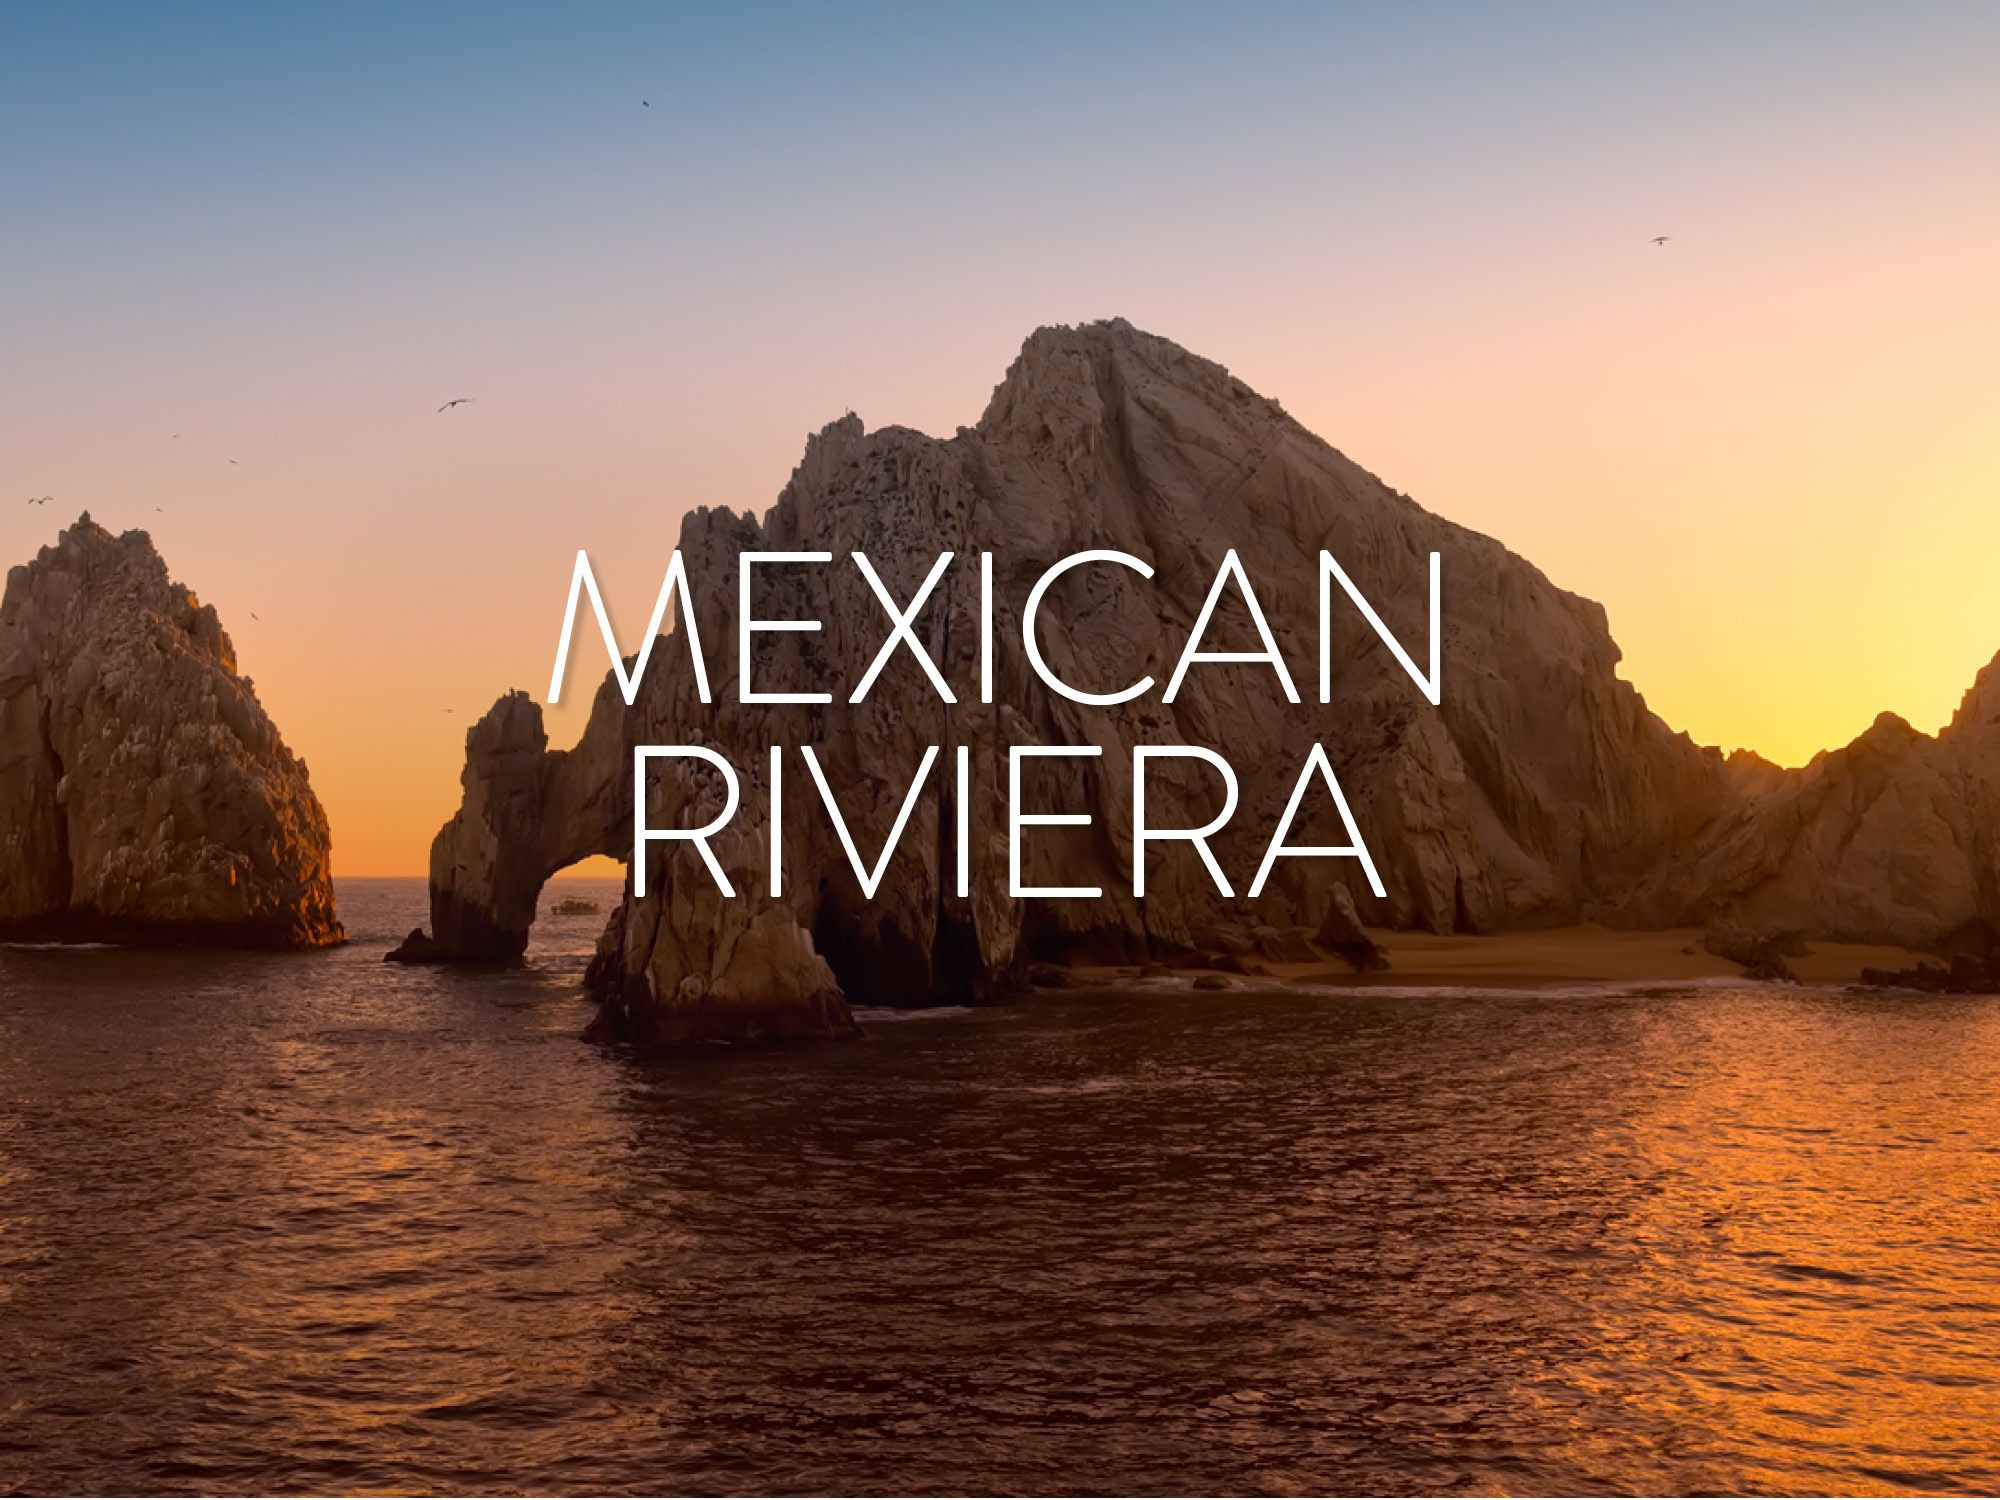 The Pacific and the Gulf of Mexico stretch unto forever like a pair of warm blue blankets. The highlands behind you teem with unique flora and fauna.   #Explore #Mexico #TravelIdeas #TravelInspiration #Cruising #Vacation #Travel